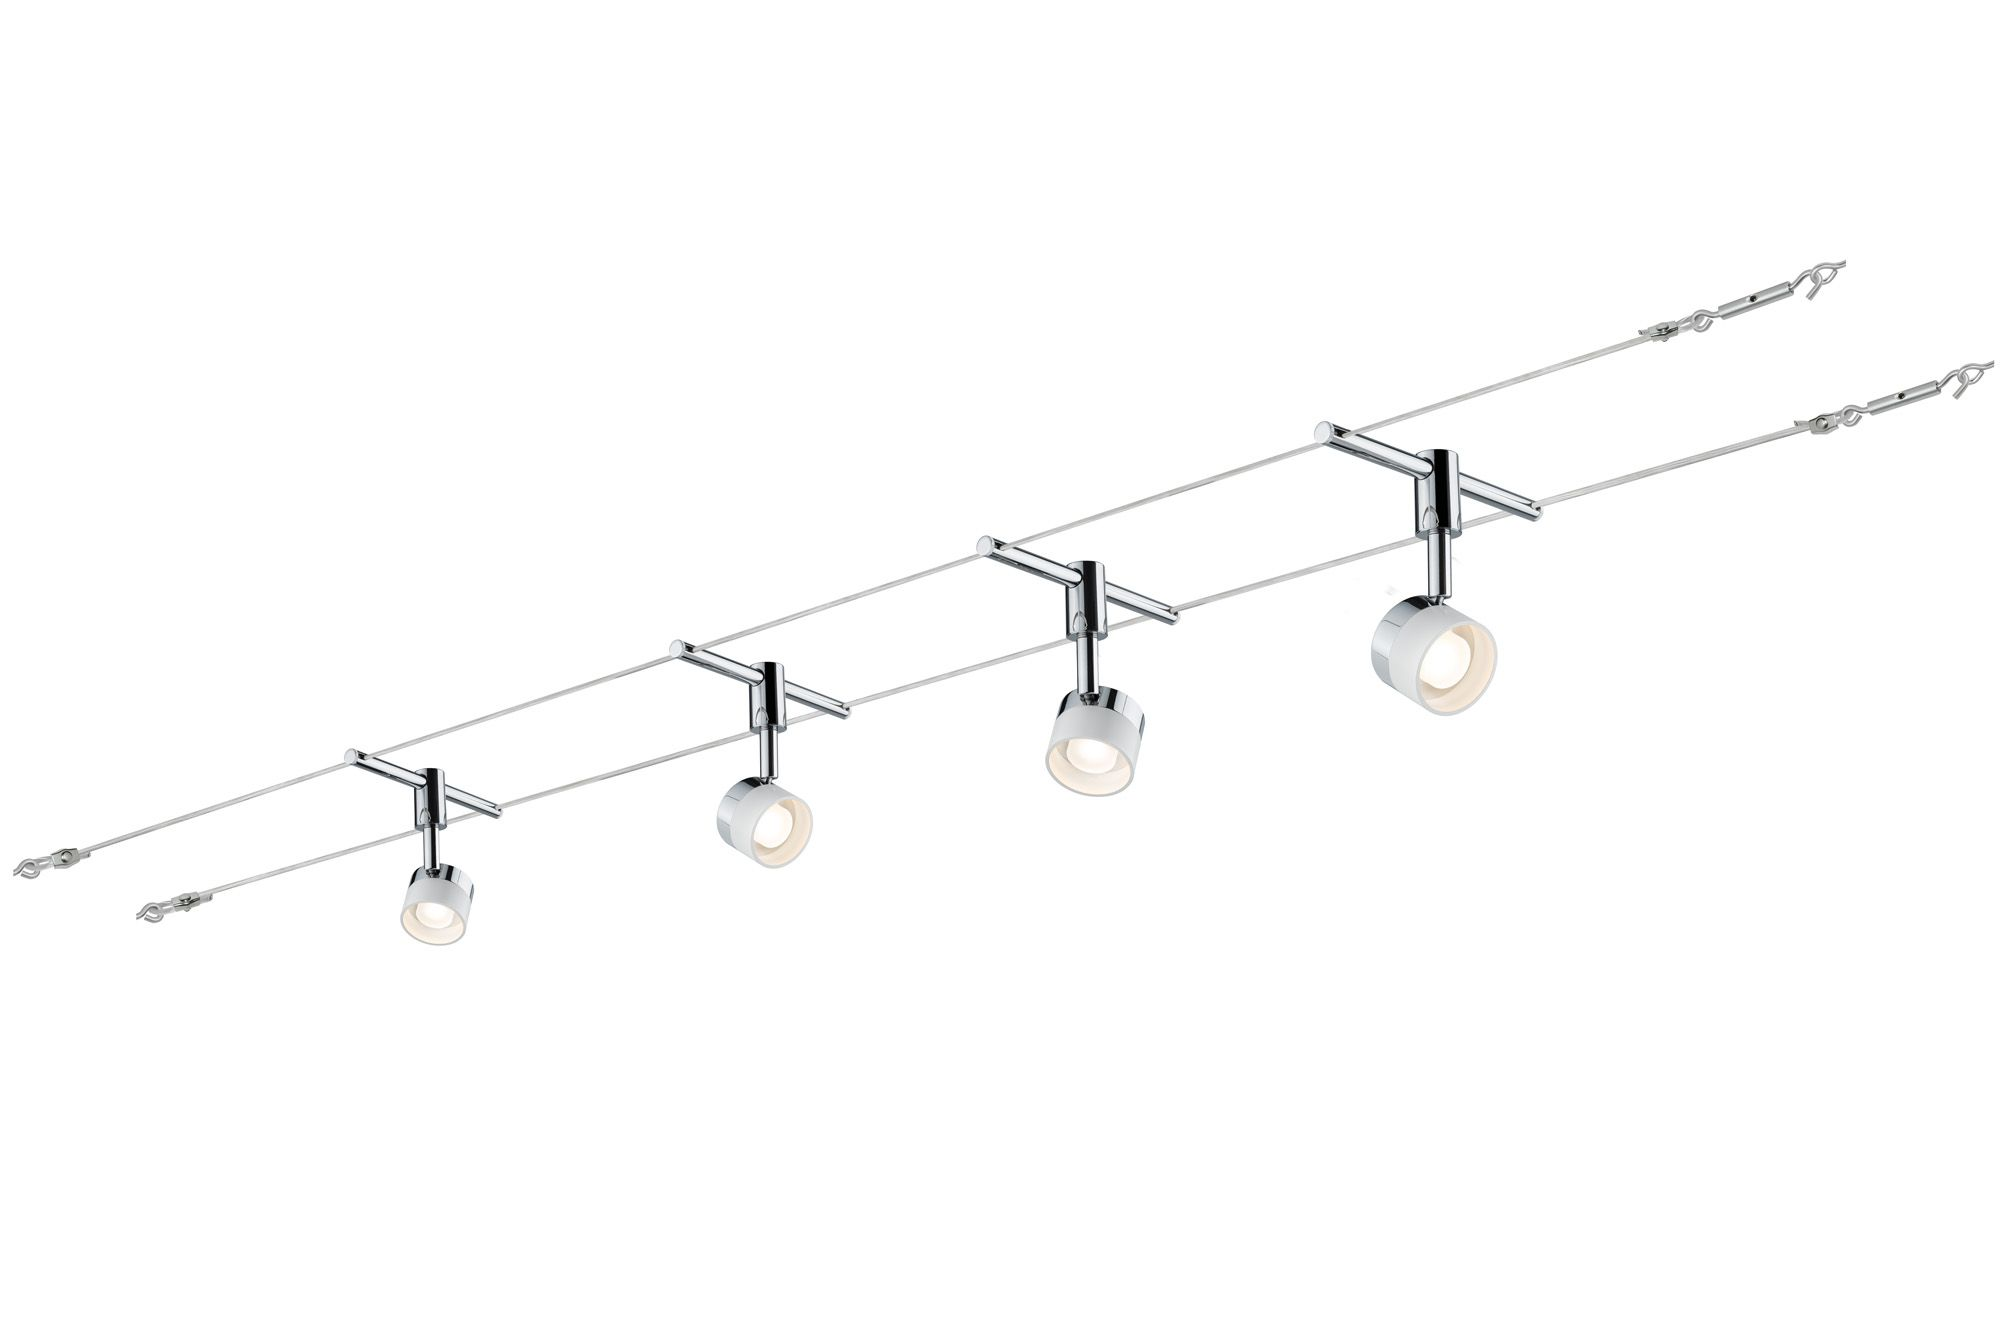 Magasin Luminaire Bourges Luminaire Sur Cable Tendu Led Creapach